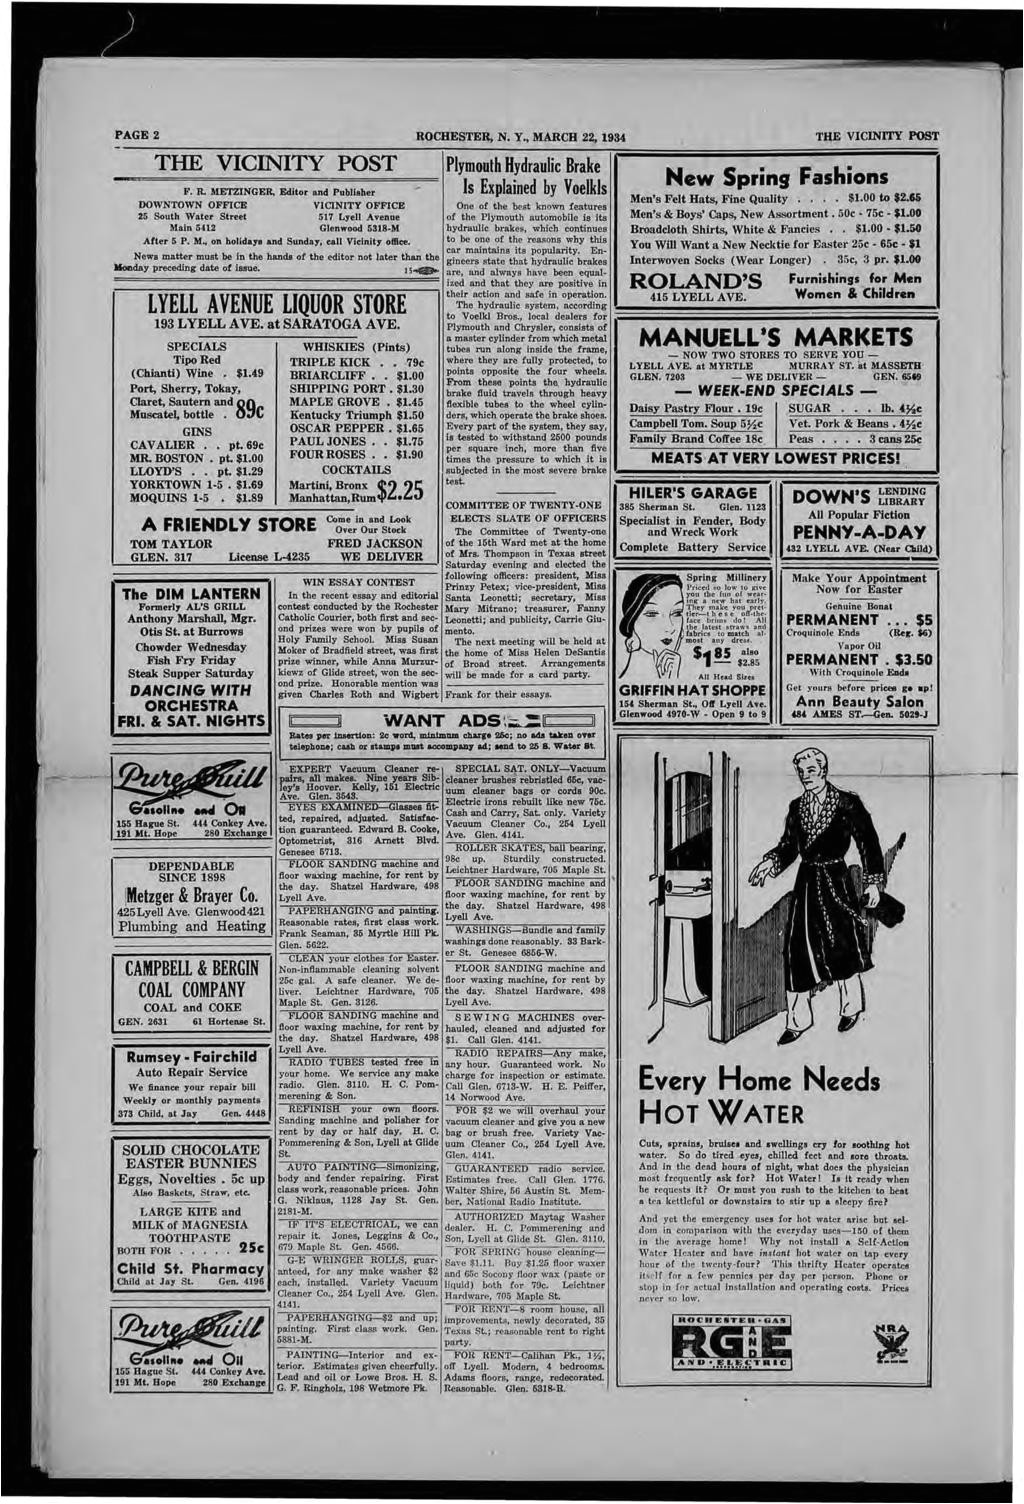 page 2 rochester n y march 22 1934 the vicinity post the vicinity post